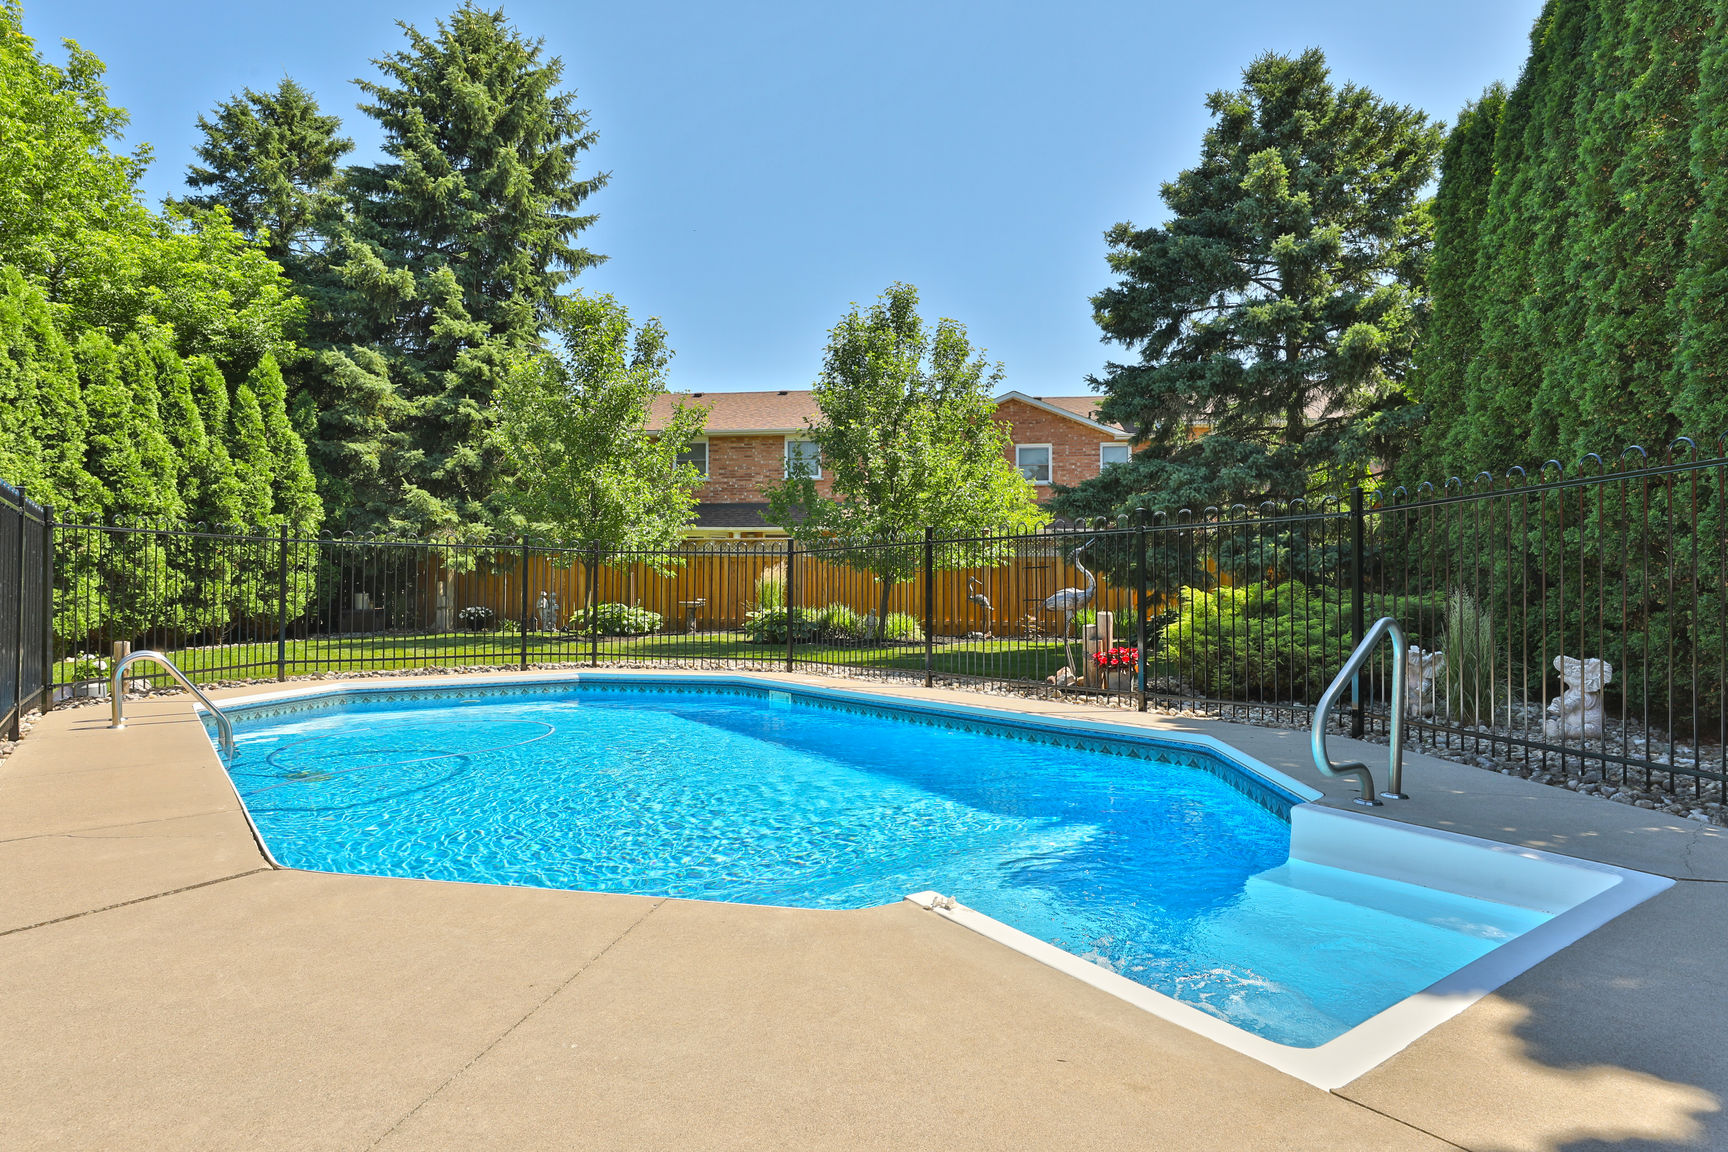 85 Galley pool 1 - Recently SOLD in Ancaster